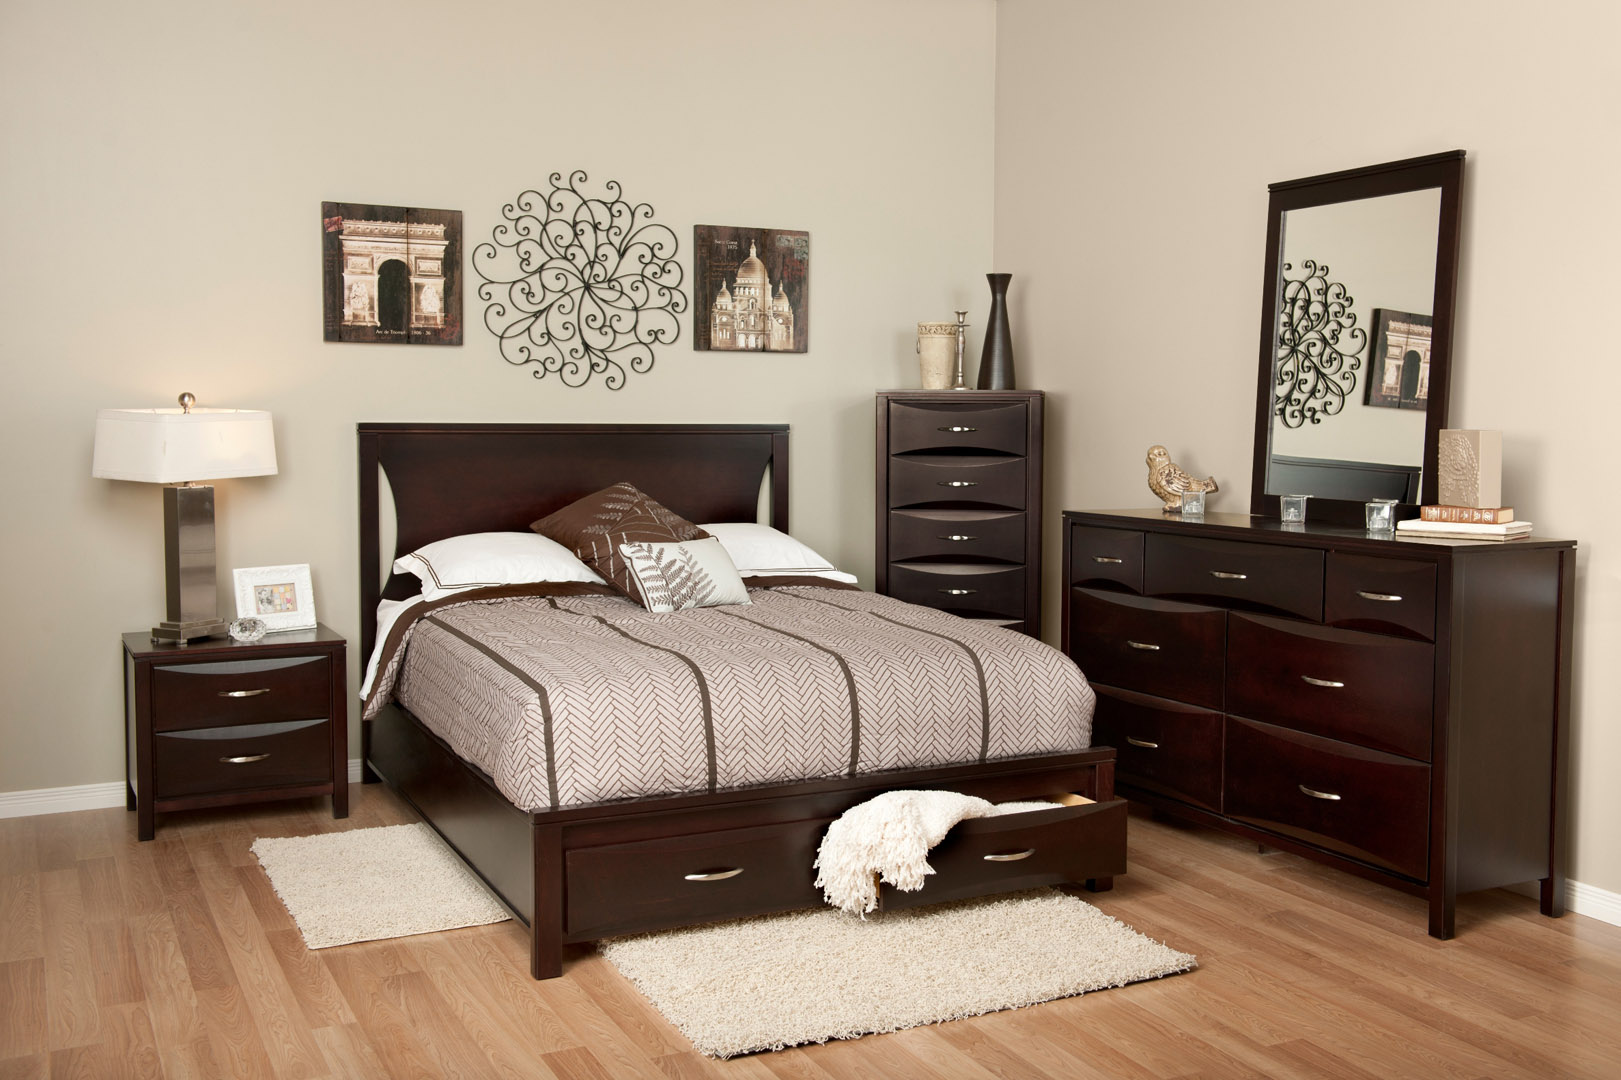 Bedrooms charlton furniture Bedroom furniture for college students